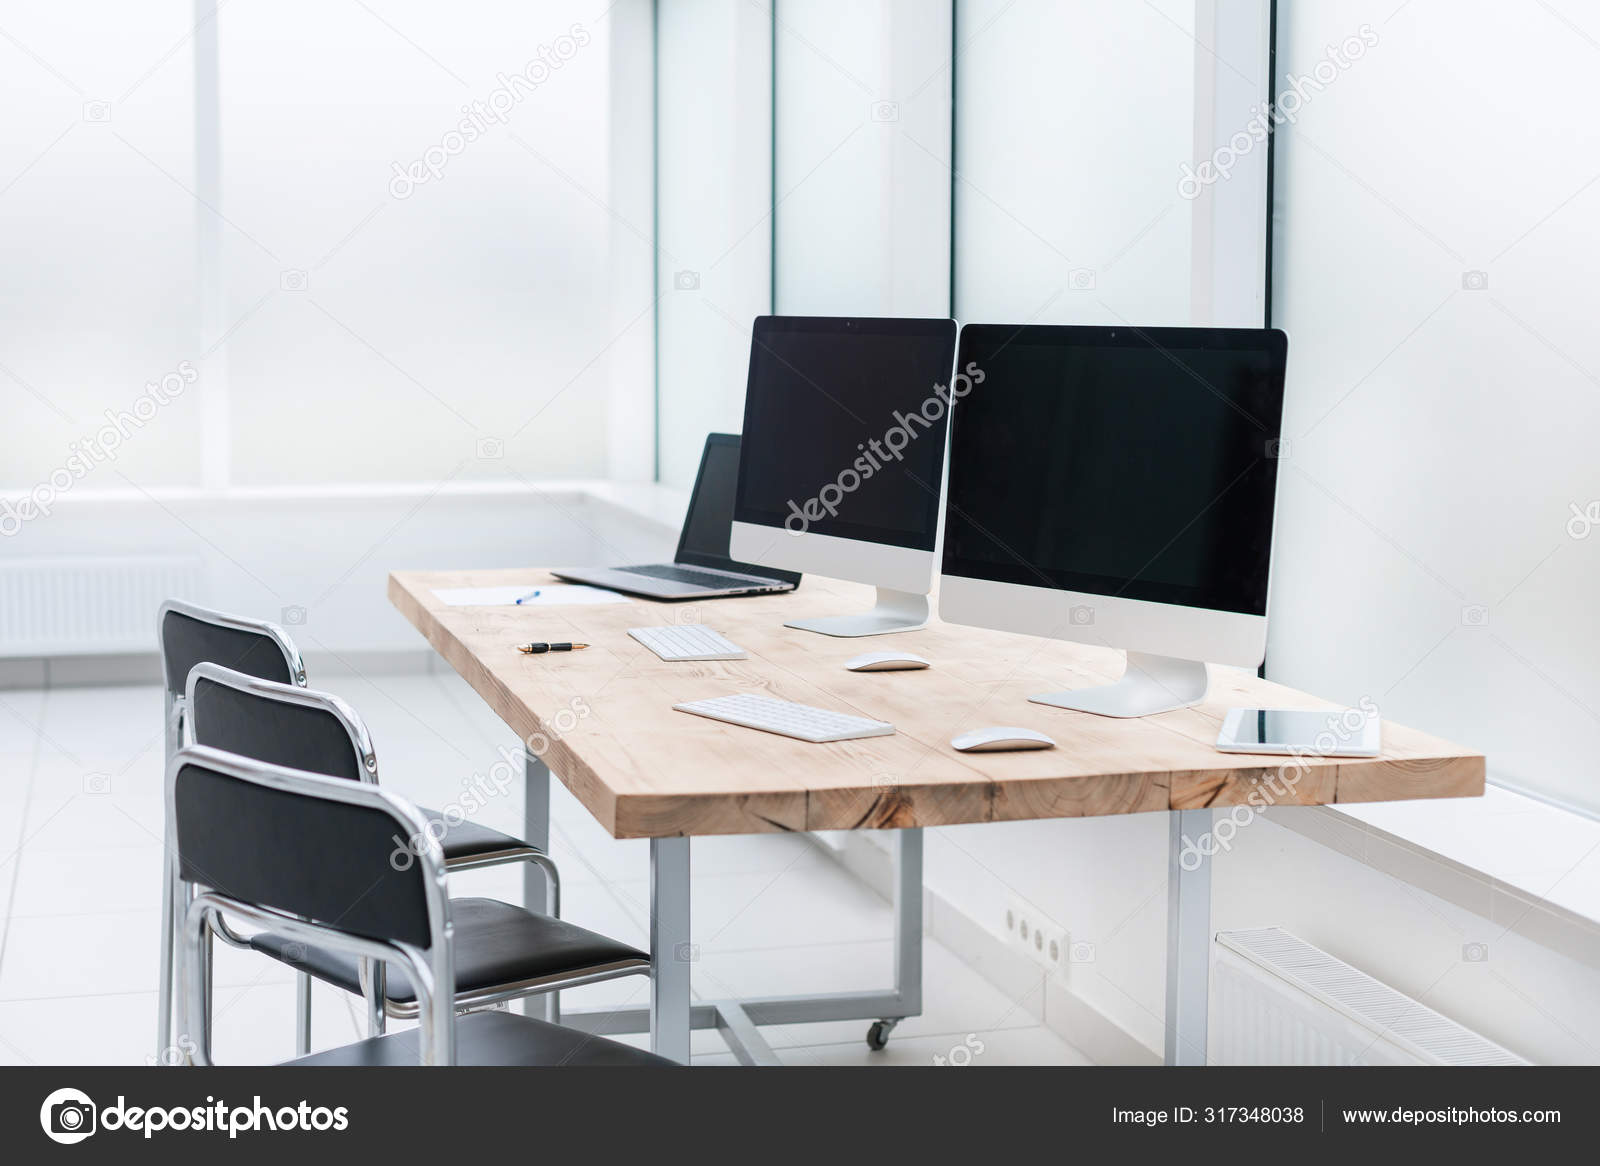 Workplace With Computers On The Table In An Empty Office Stock Photo C Albertyurolaits 317348038